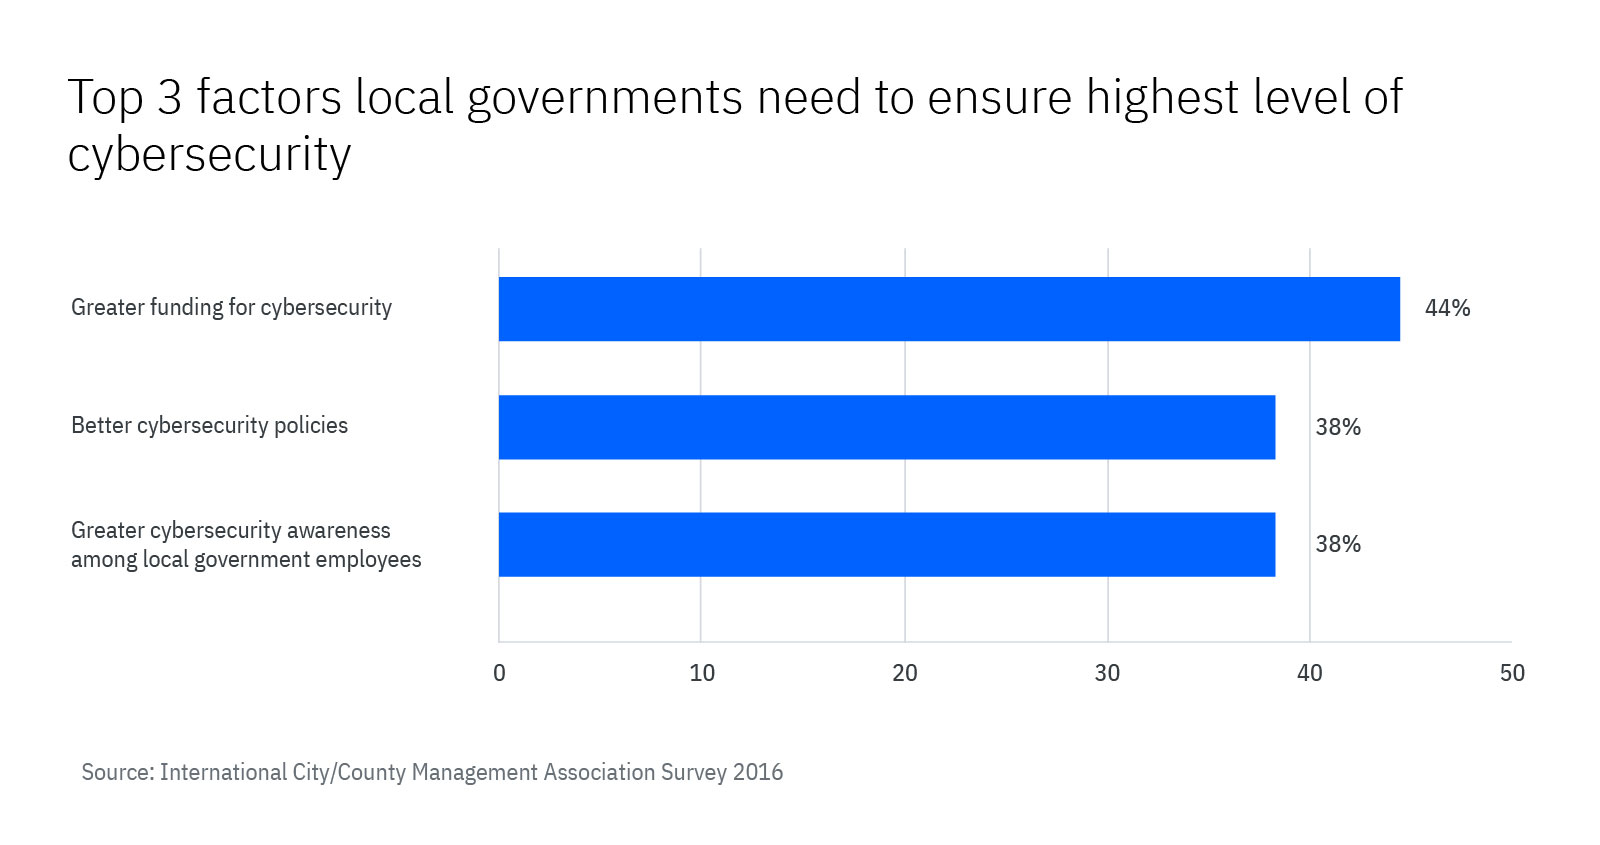 Chart from the International City/County Management Association Survey 2016